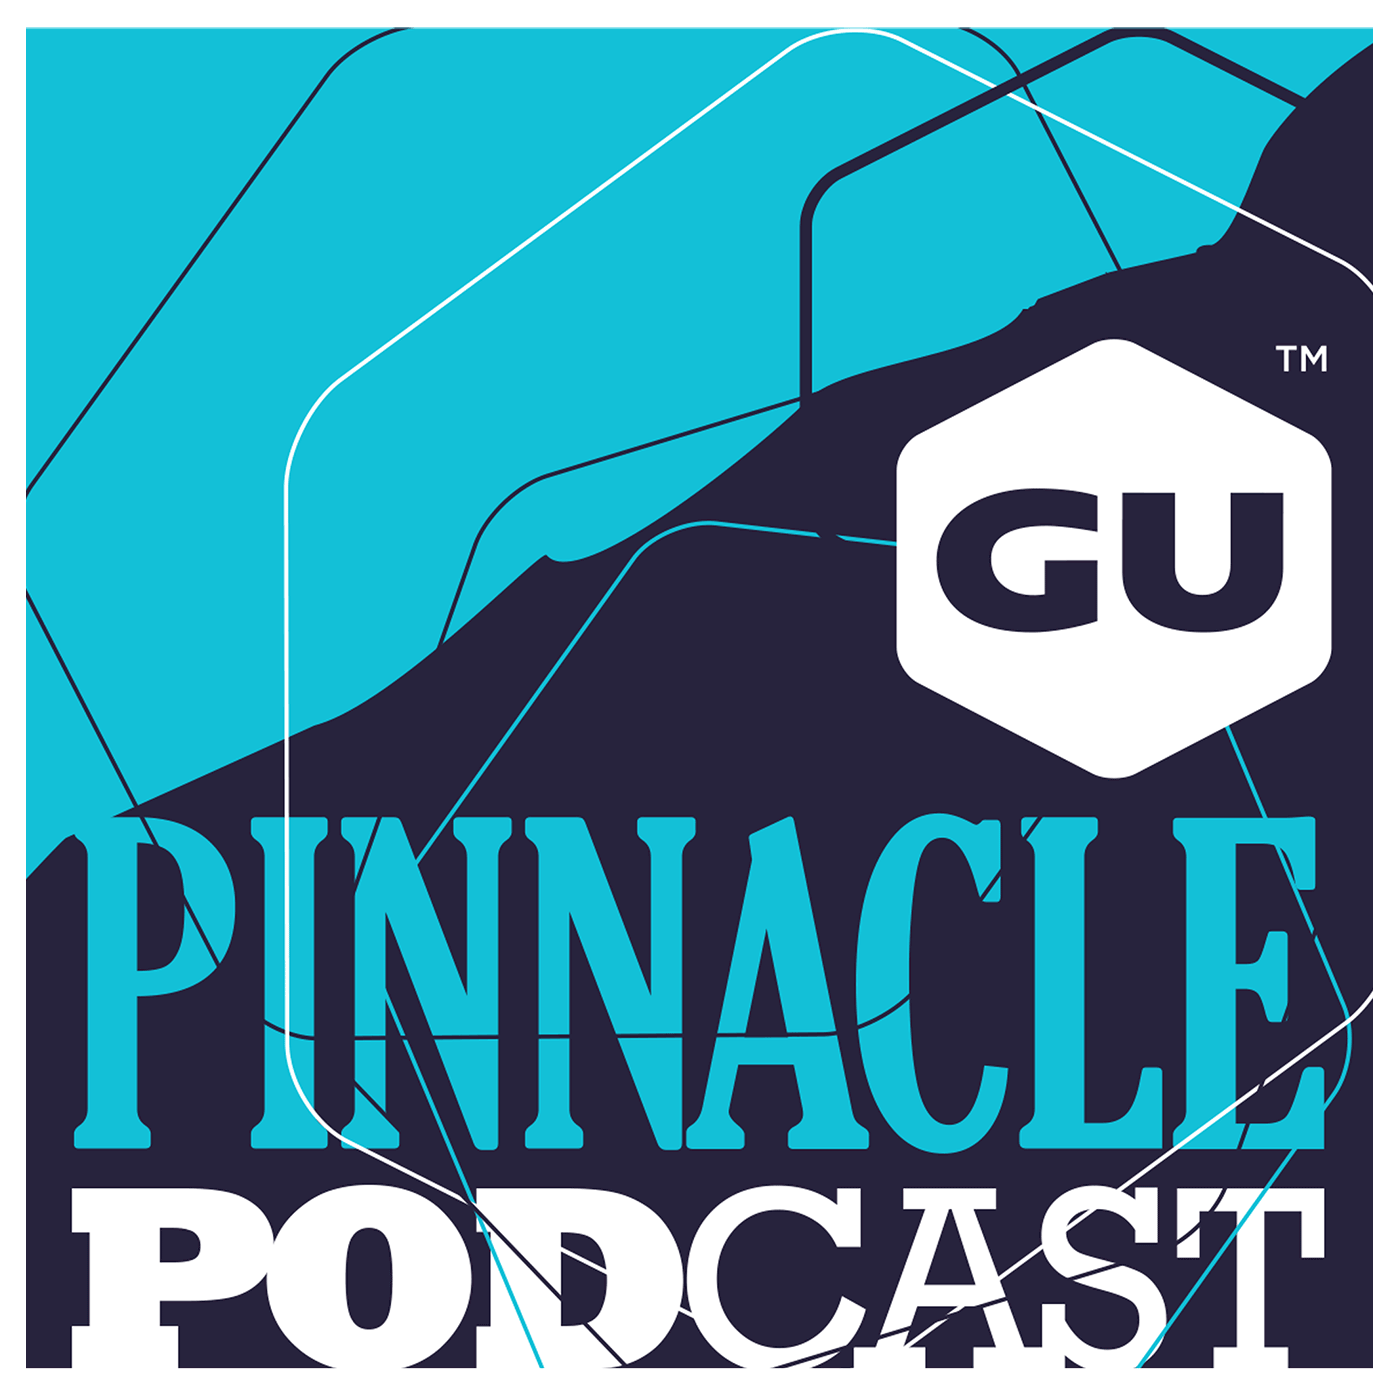 The GU Energy Labs Pinnacle Podcast show art